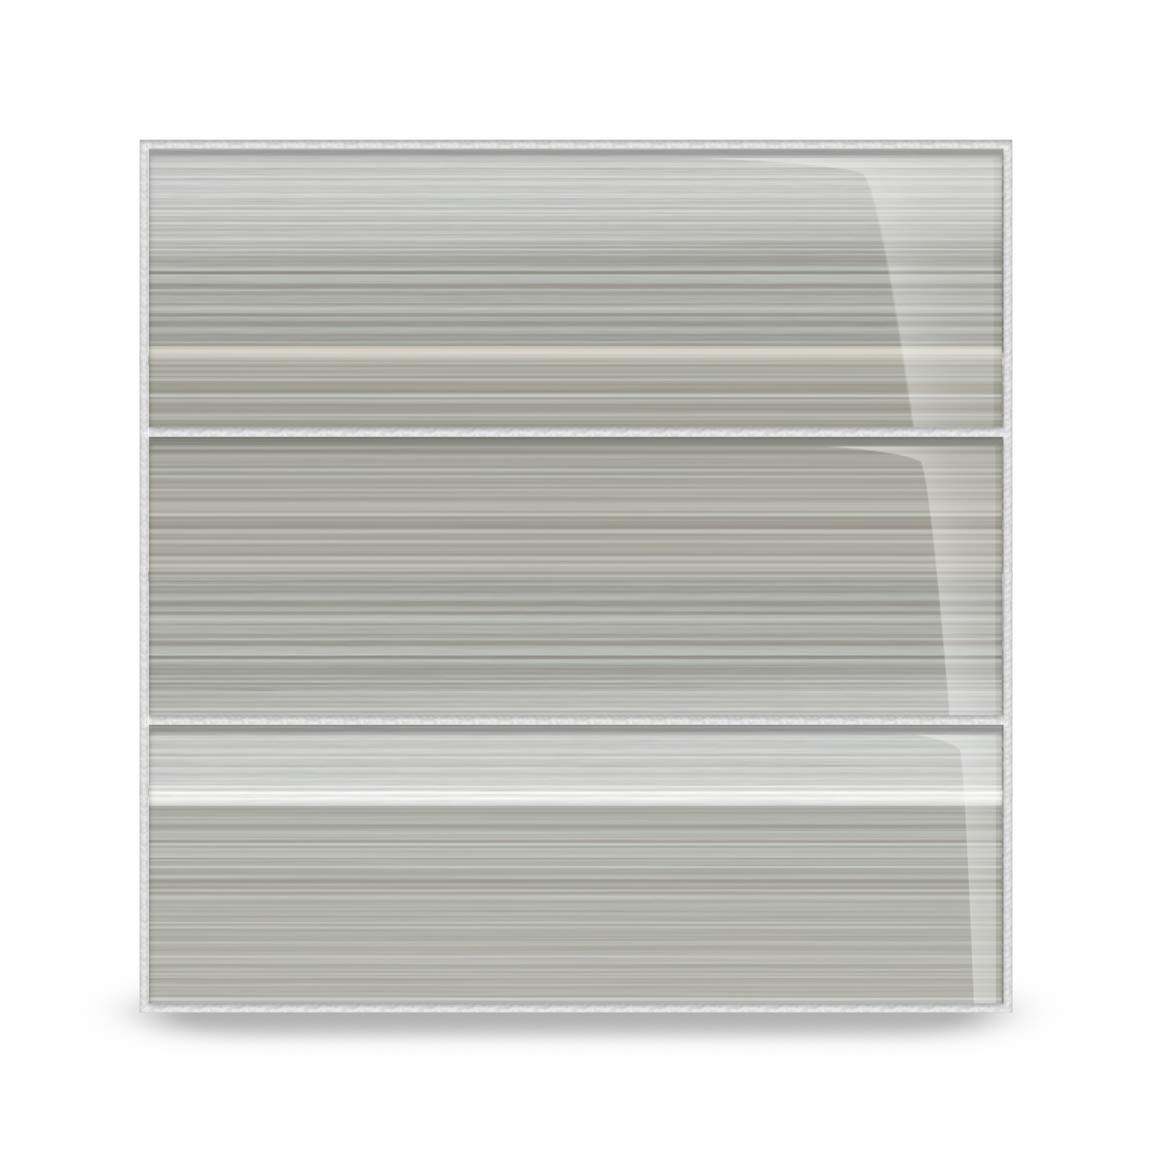 Gray Glass Subway Tile Gainsboro for Kitchen Backsplash or Bathroom from Bodesi, 4x12 by Bodesi - Mosaic and Glass Tile